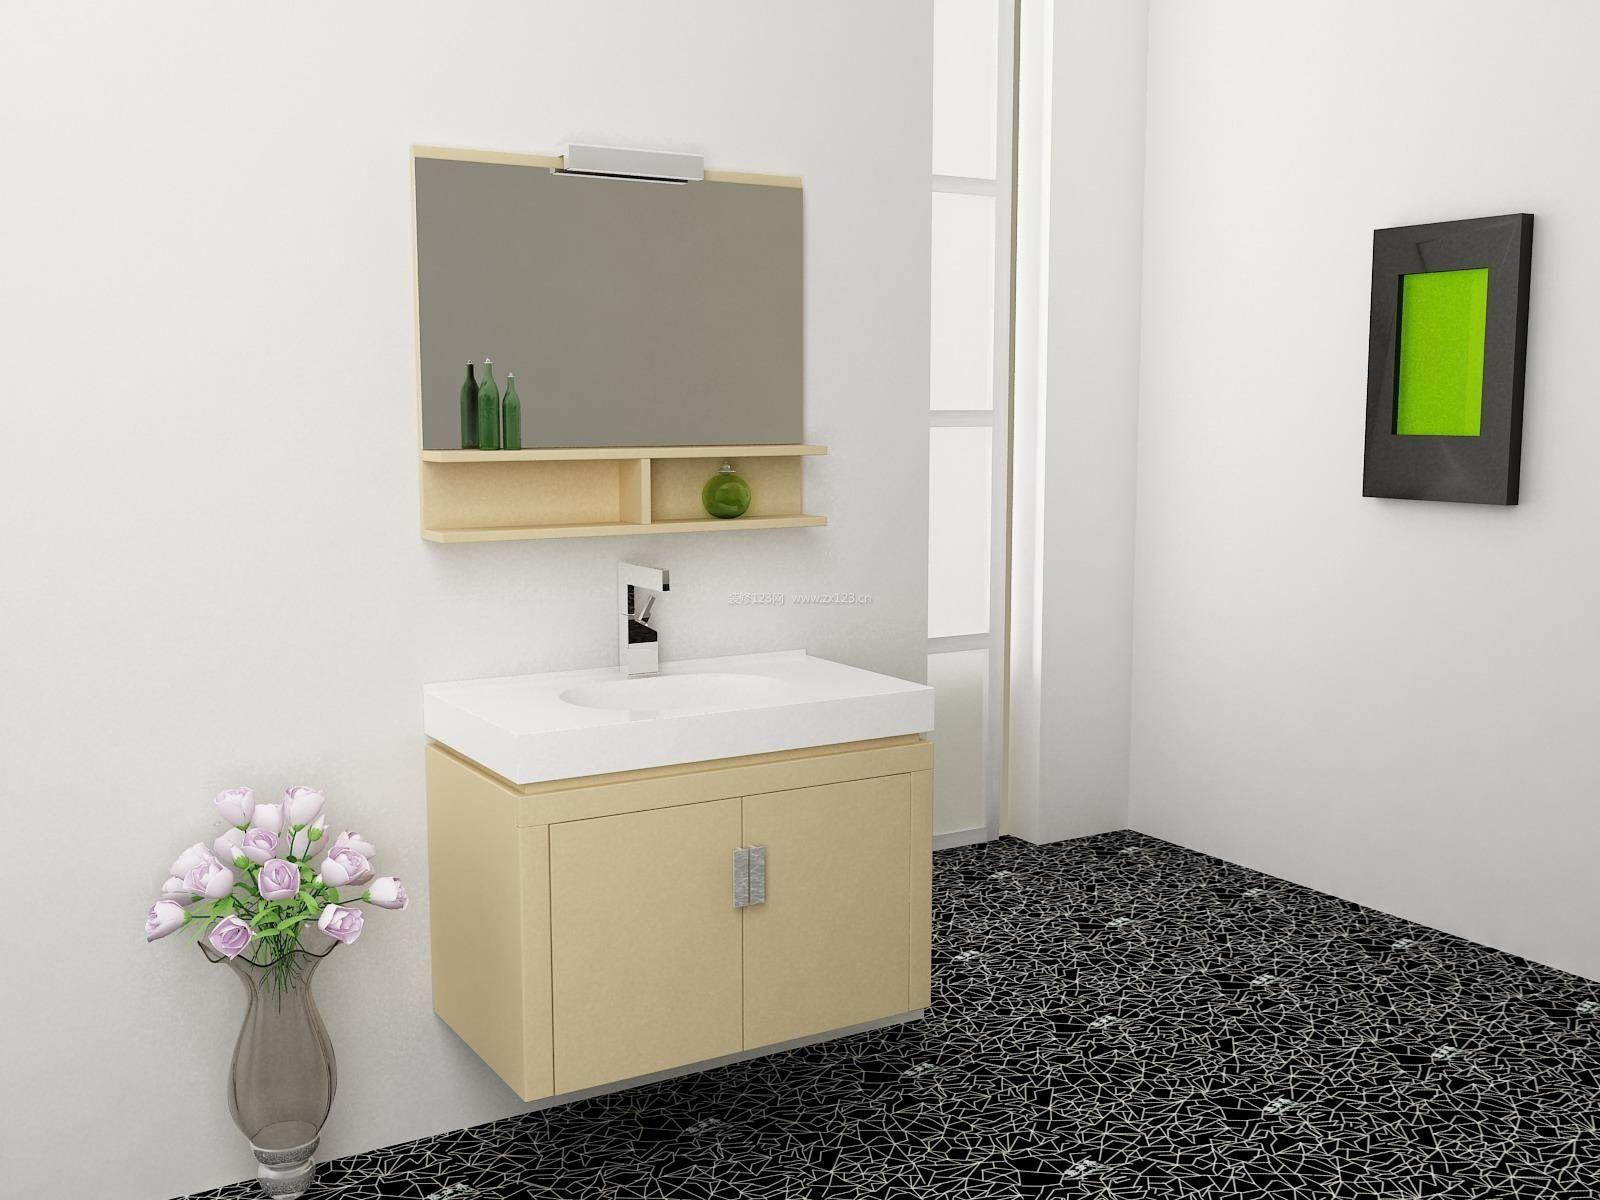 Why most of bathroom sink 's material is ceramic